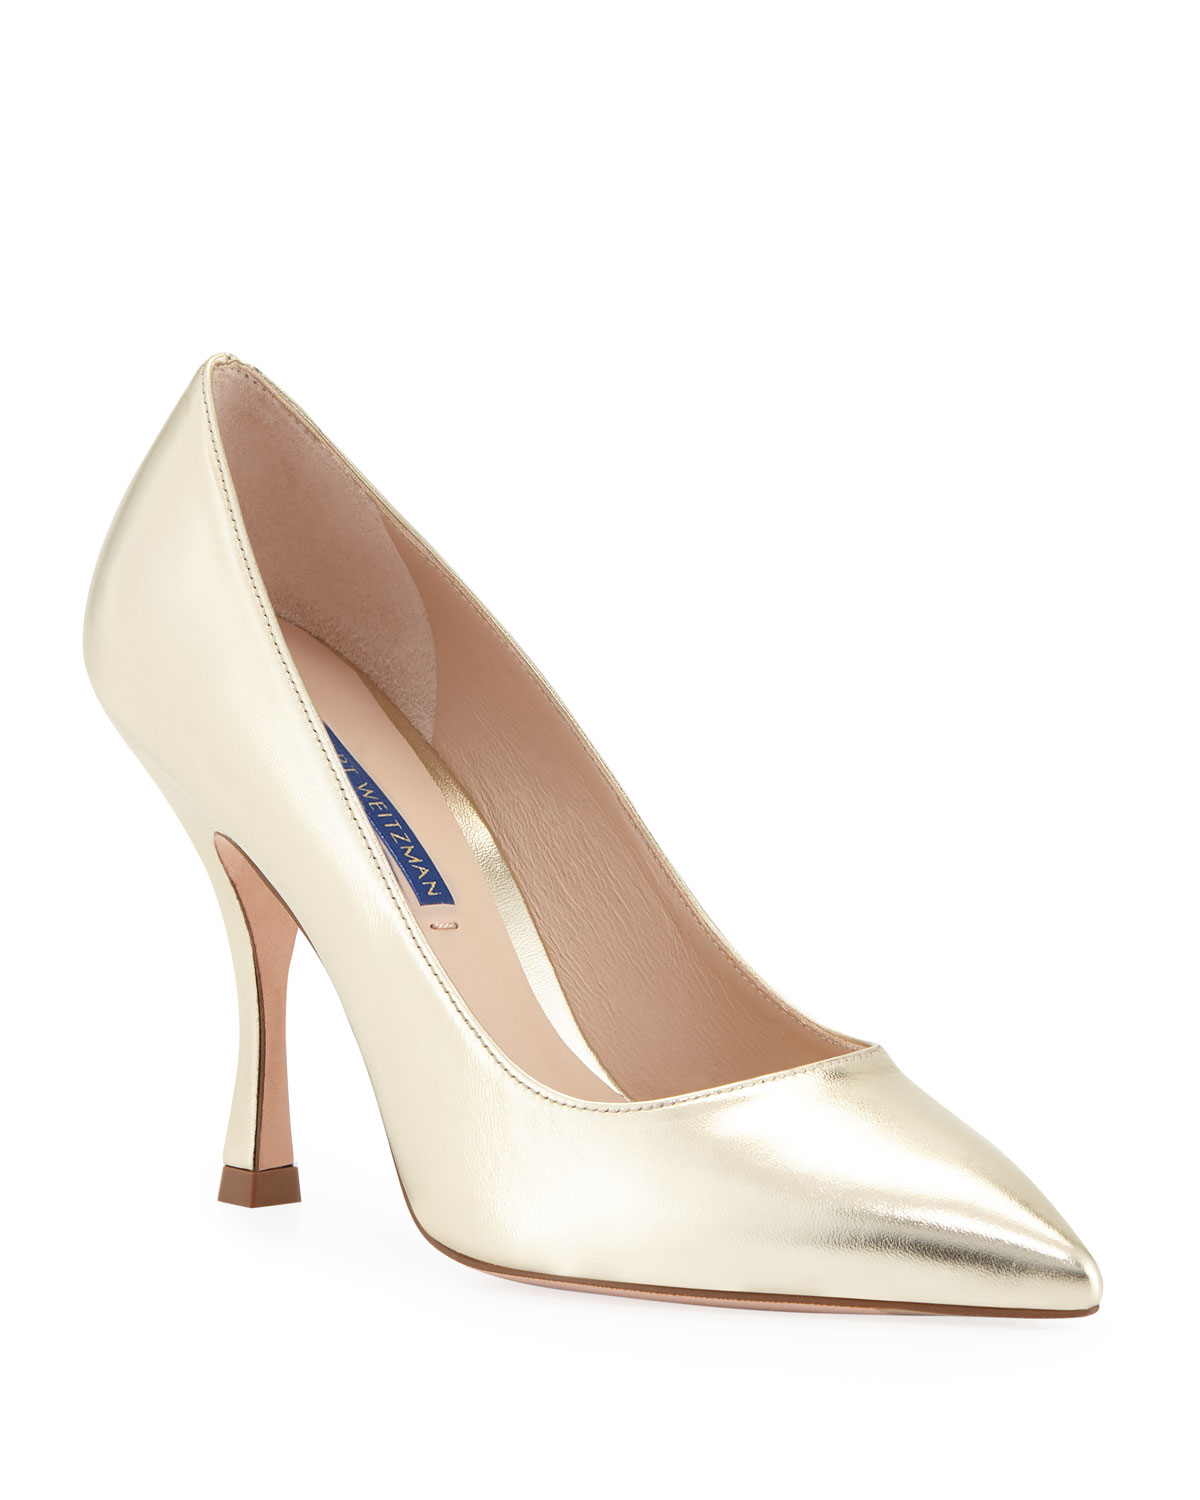 a7447ccca6 Stuart Weitzman Tippi 95mm Metallic Leather Point-Toe Pumps | Neiman ...